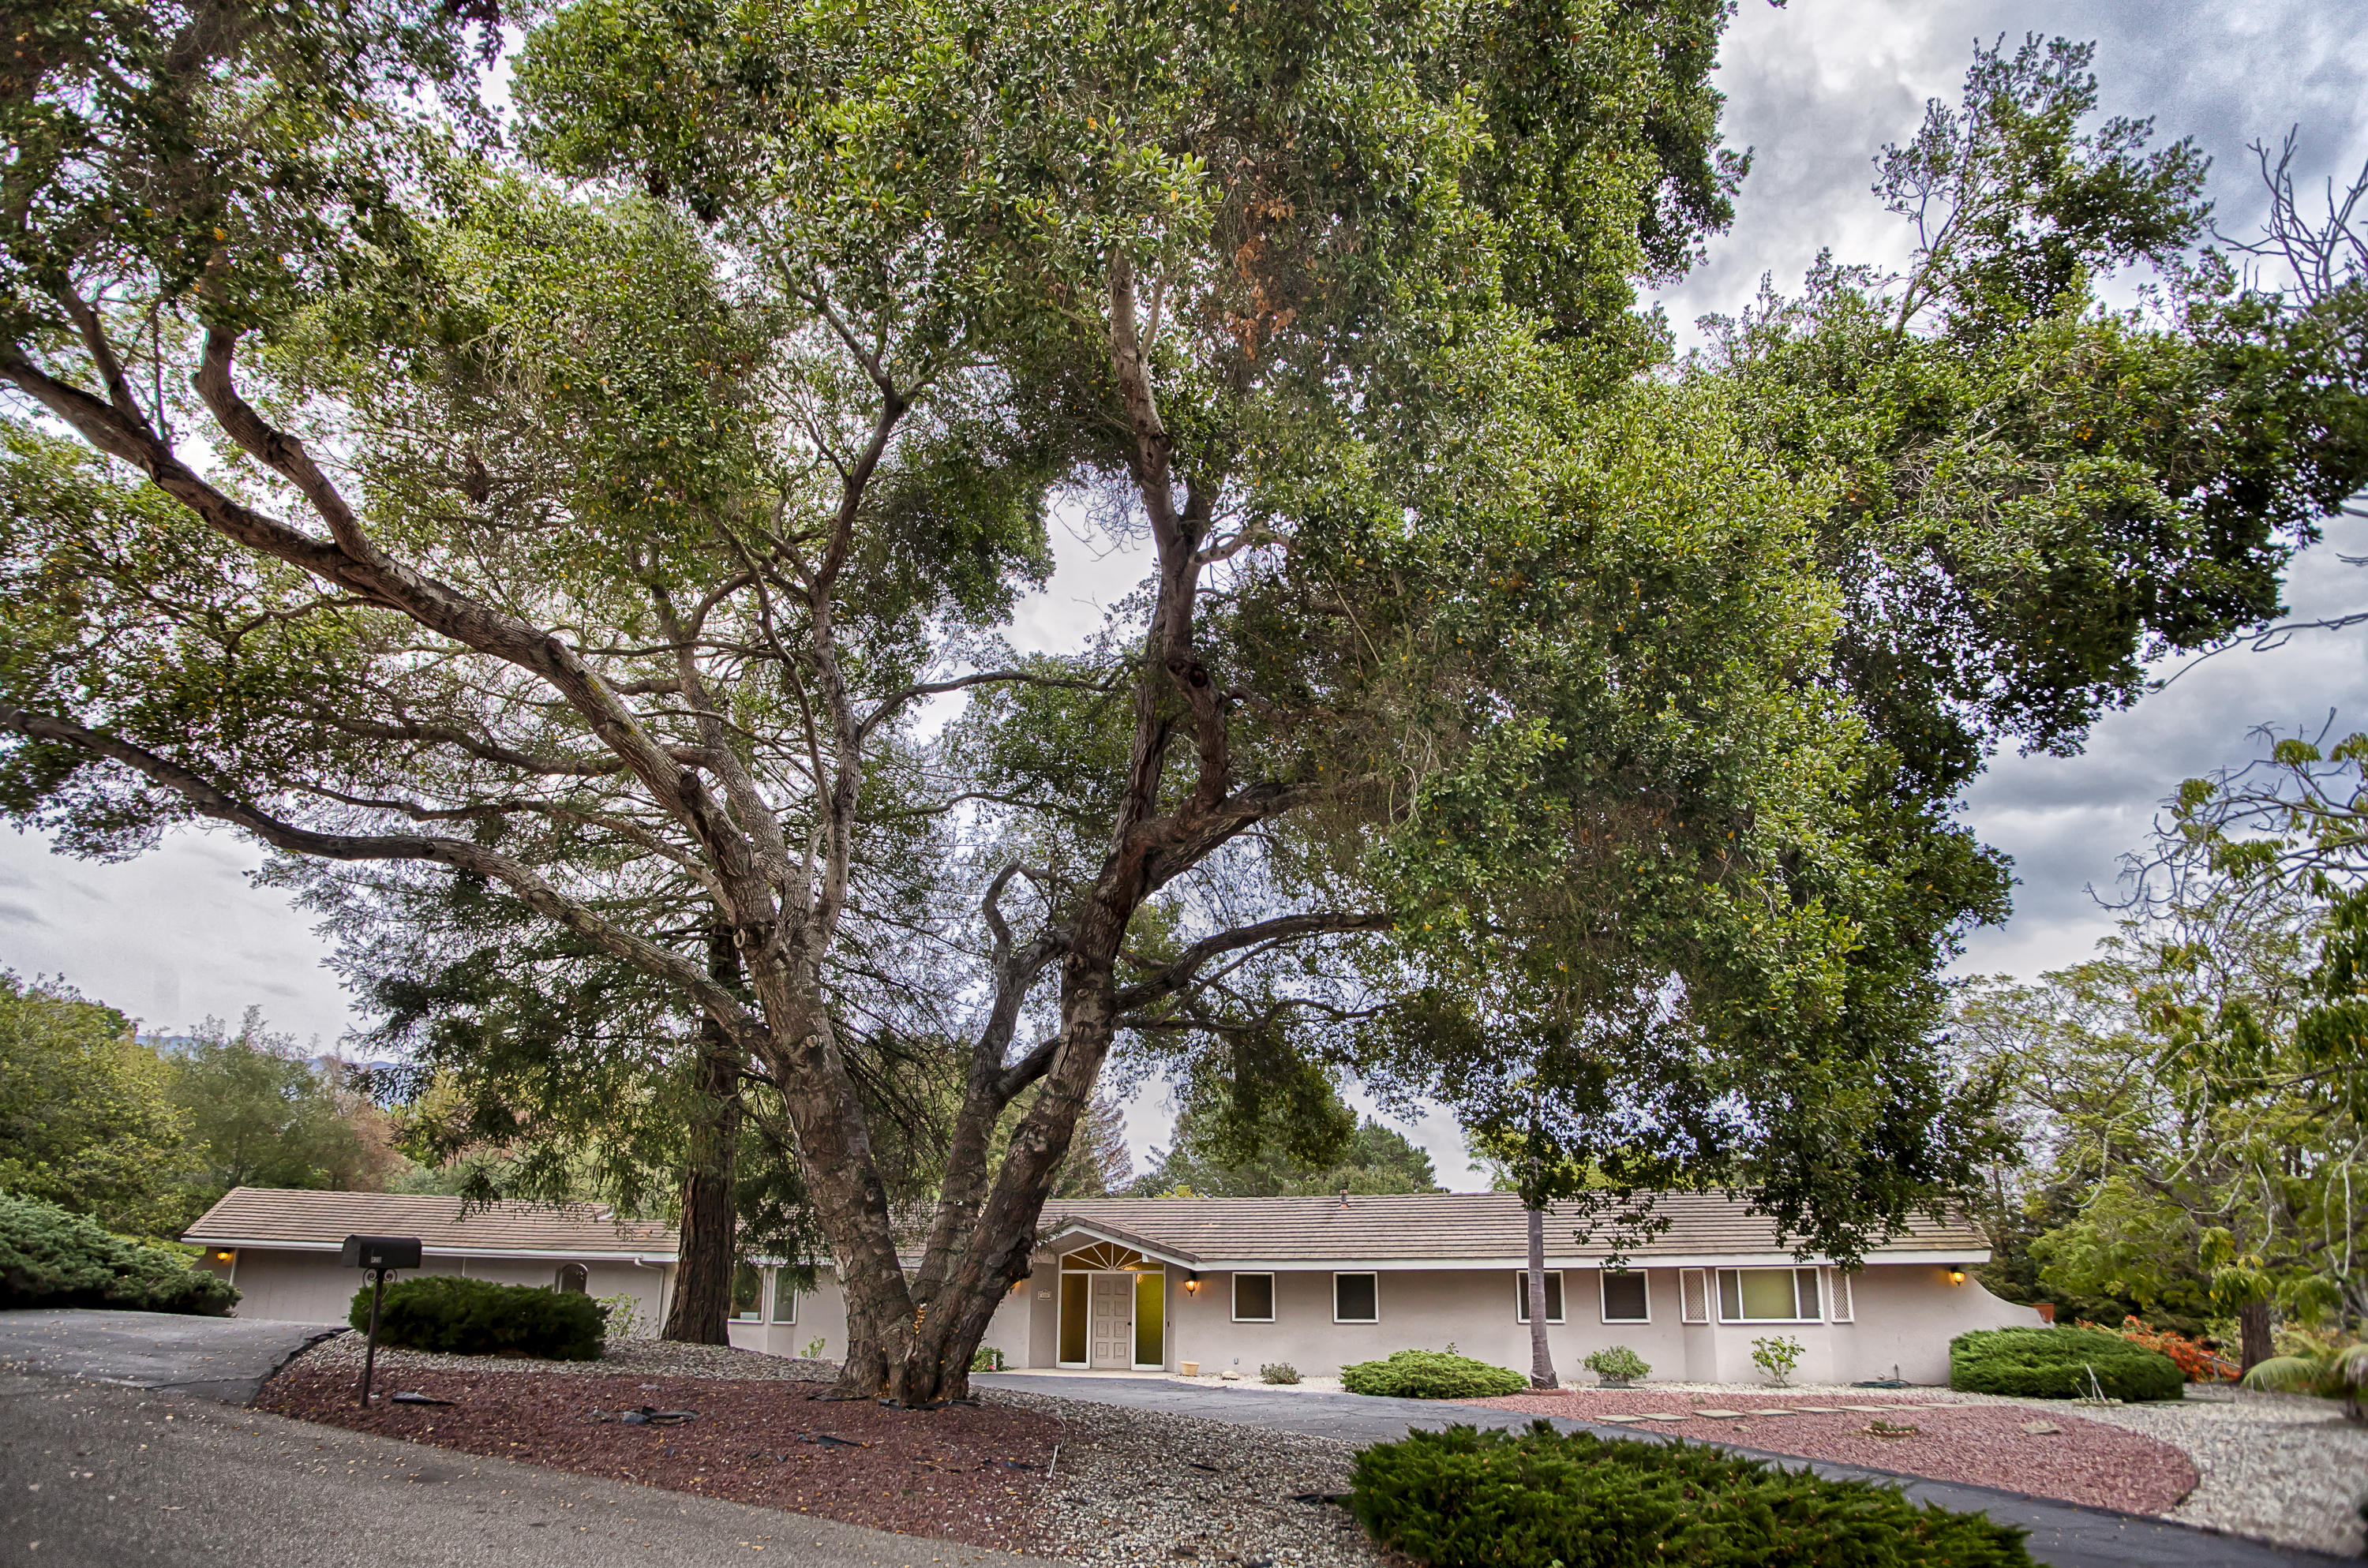 Property photo for 420 Alcala Ln Santa Barbara, California 93108 - 16-3604